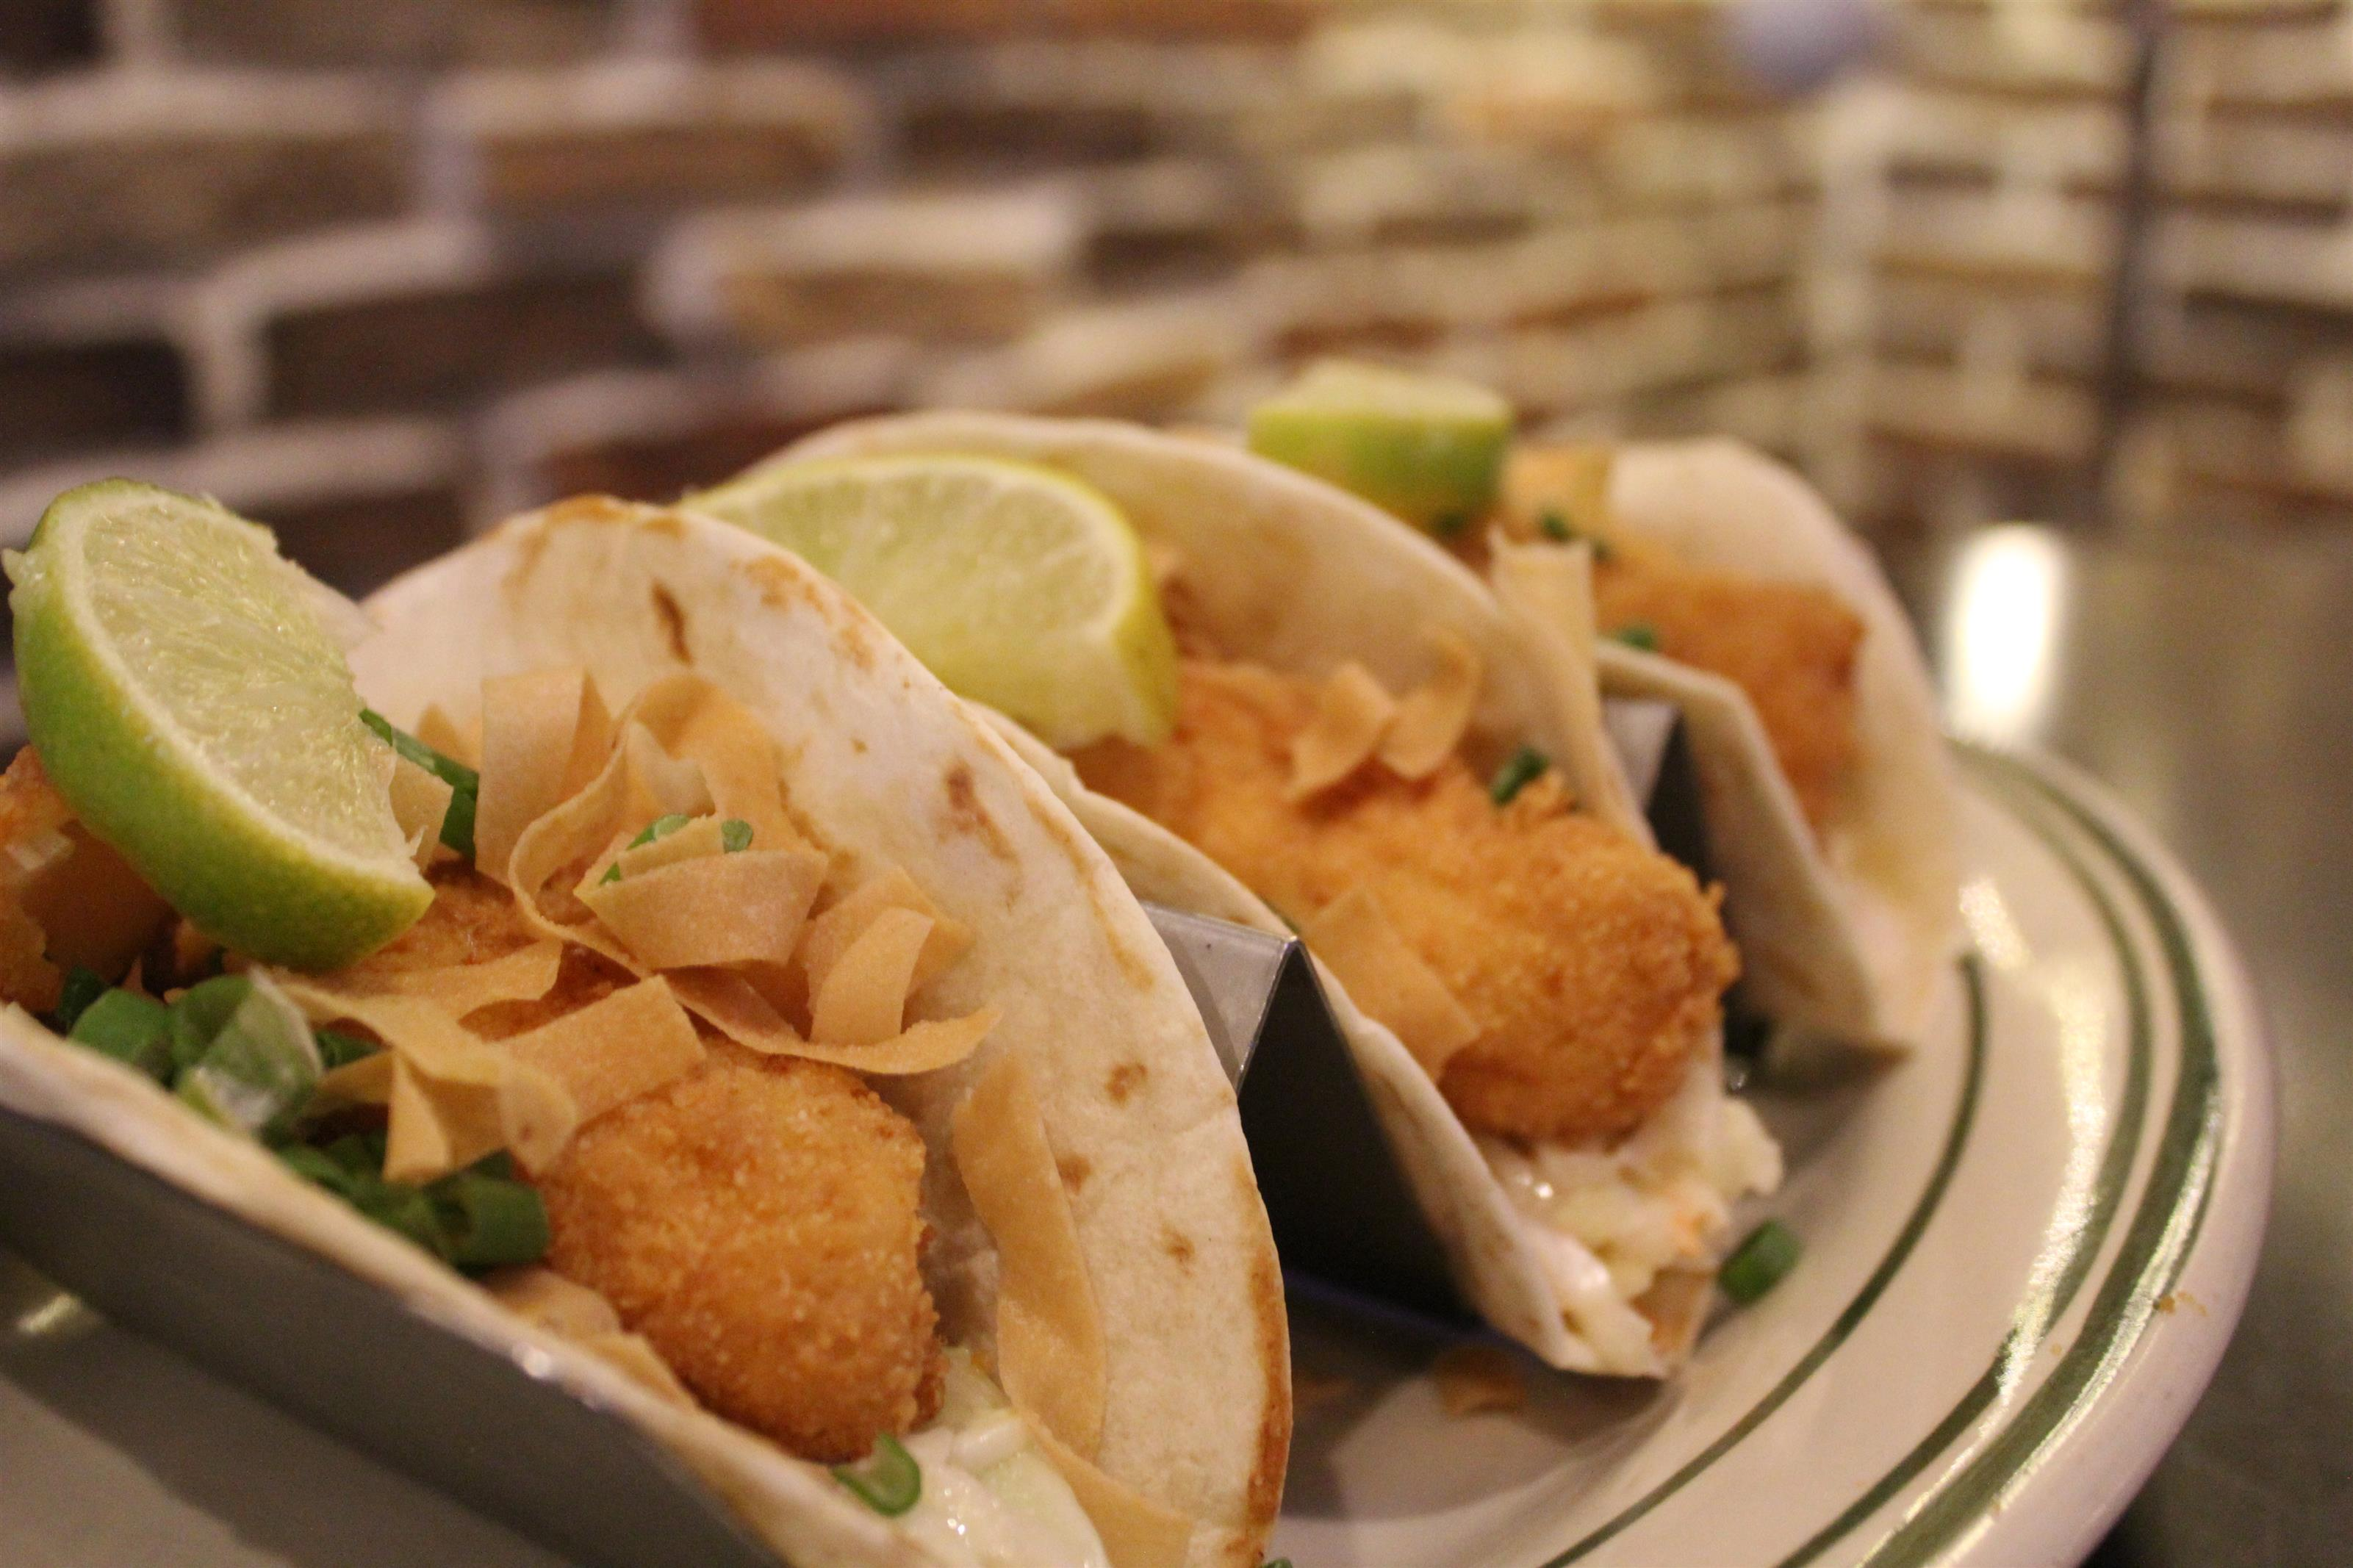 Fish tacos with tortilla strips and limes.